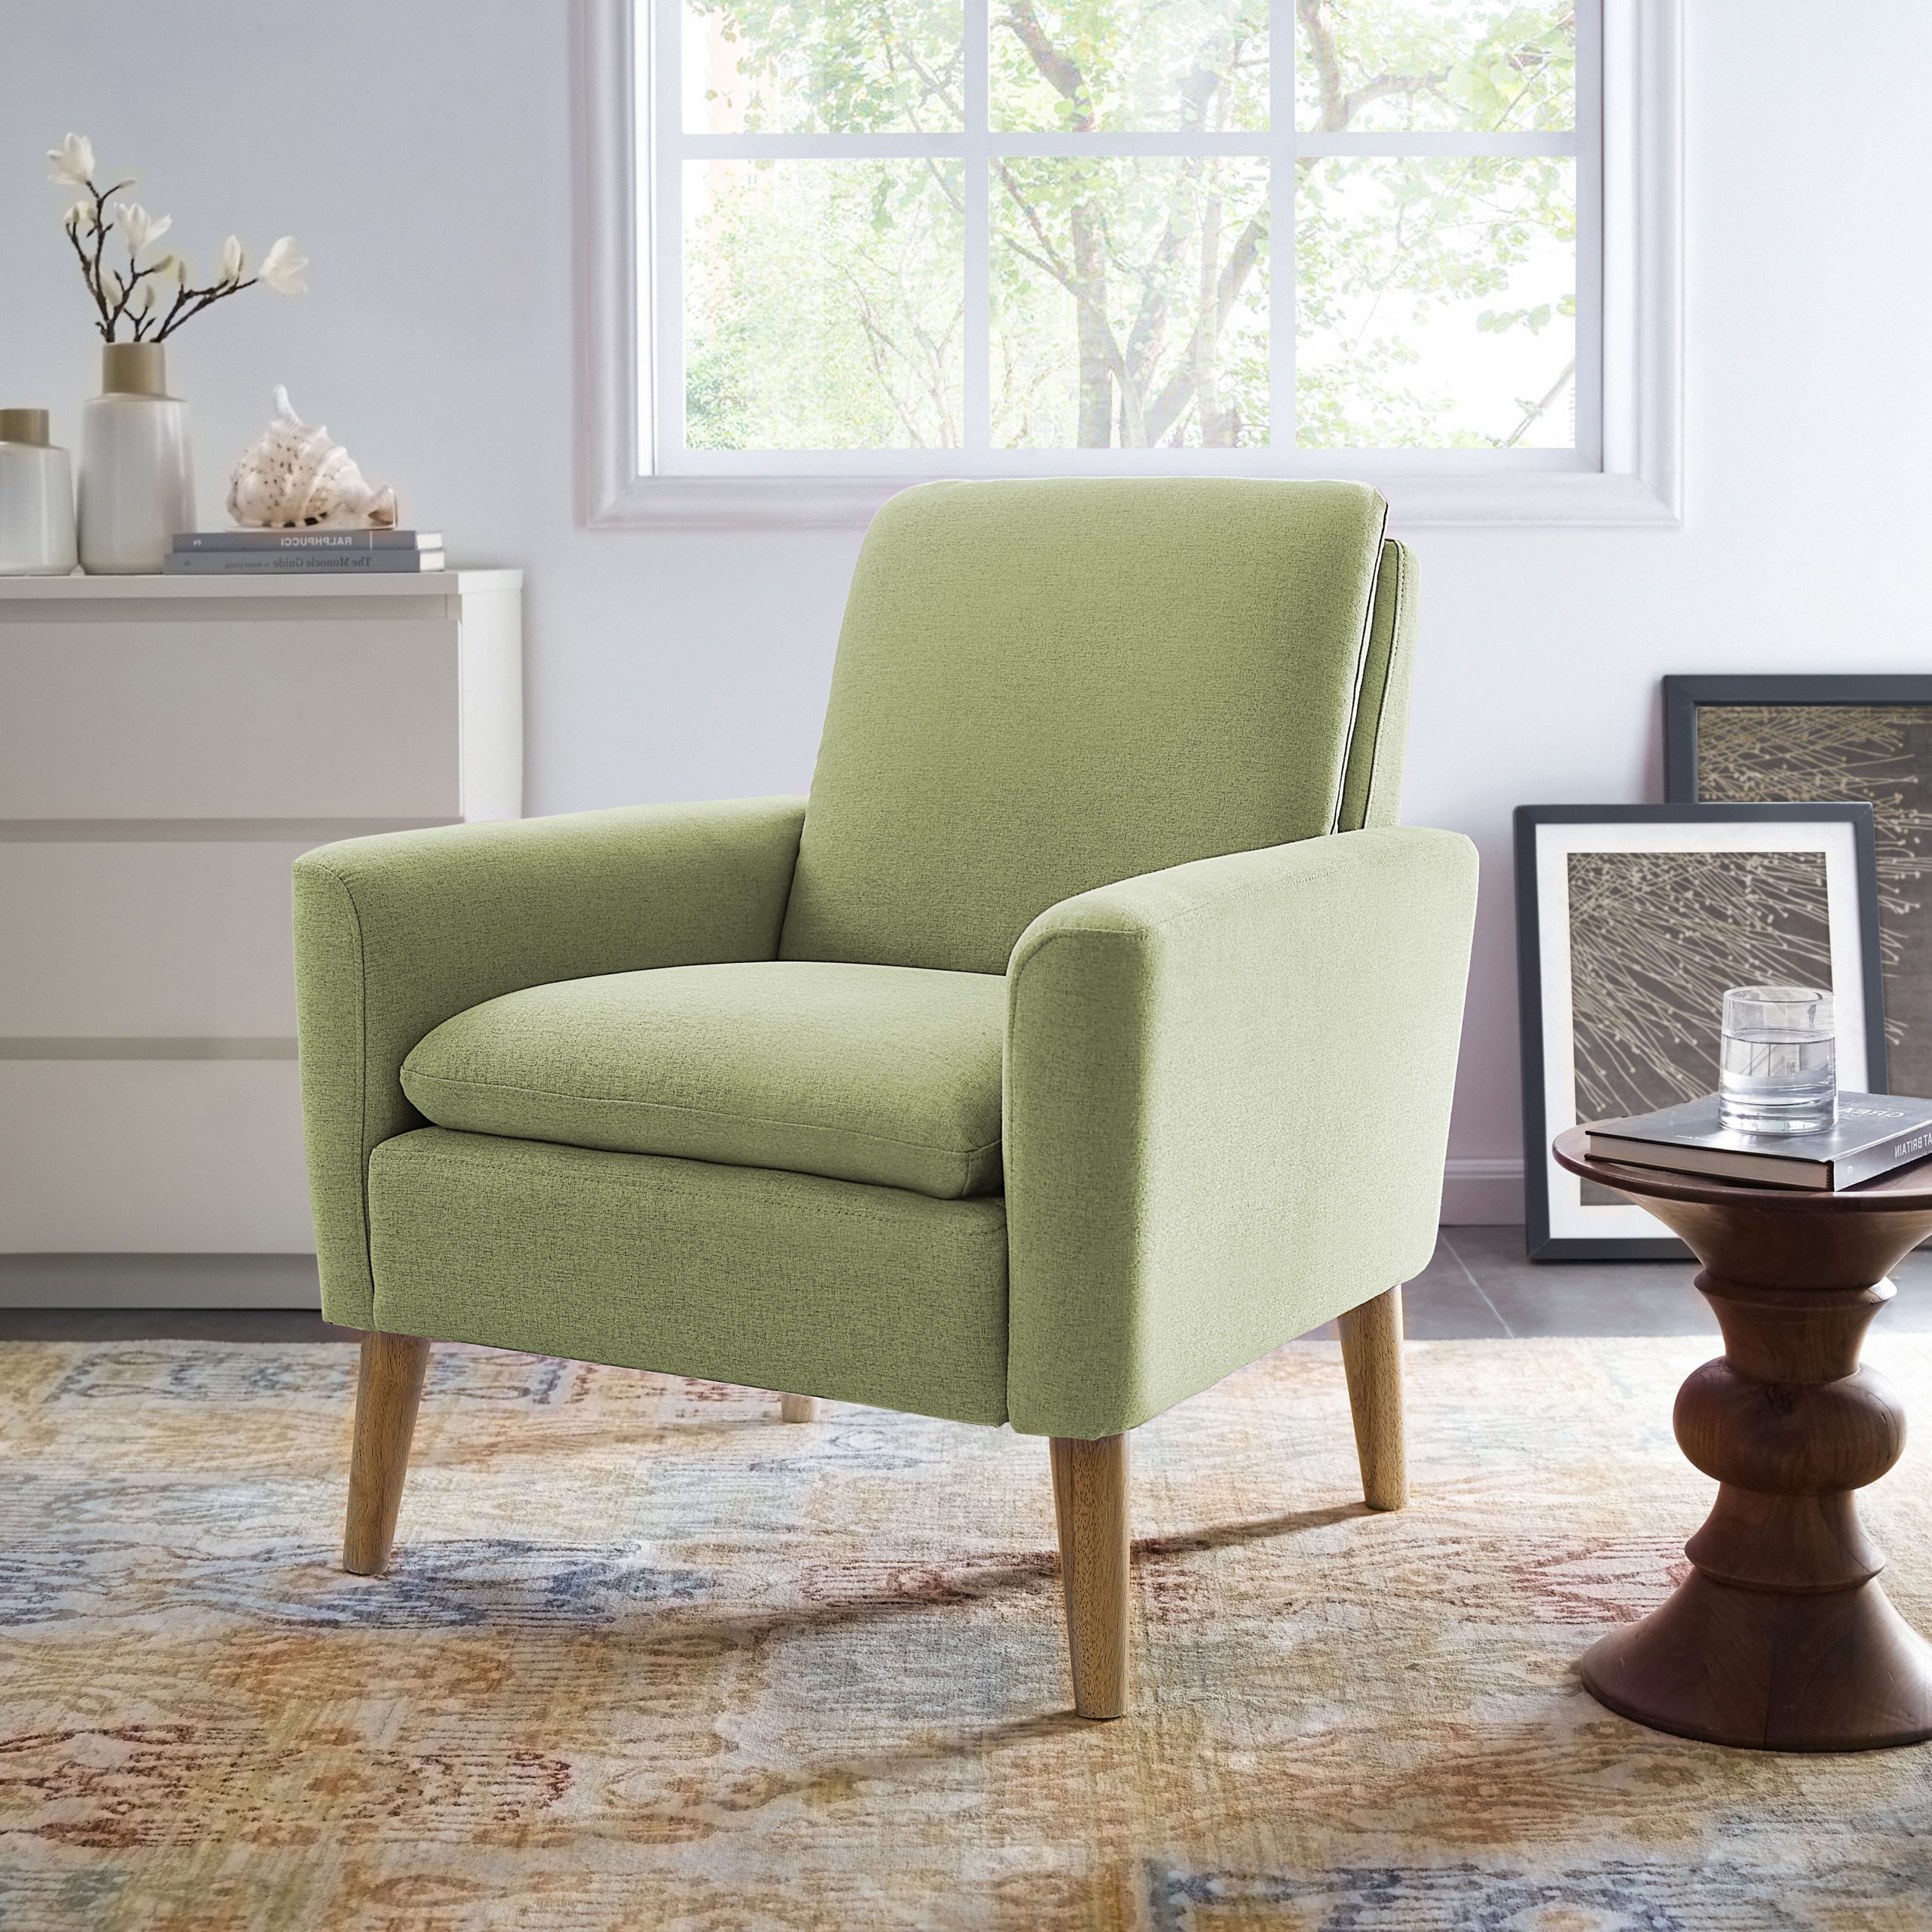 Kenley Armchair Pertaining To Hiltz Armchairs (View 7 of 15)